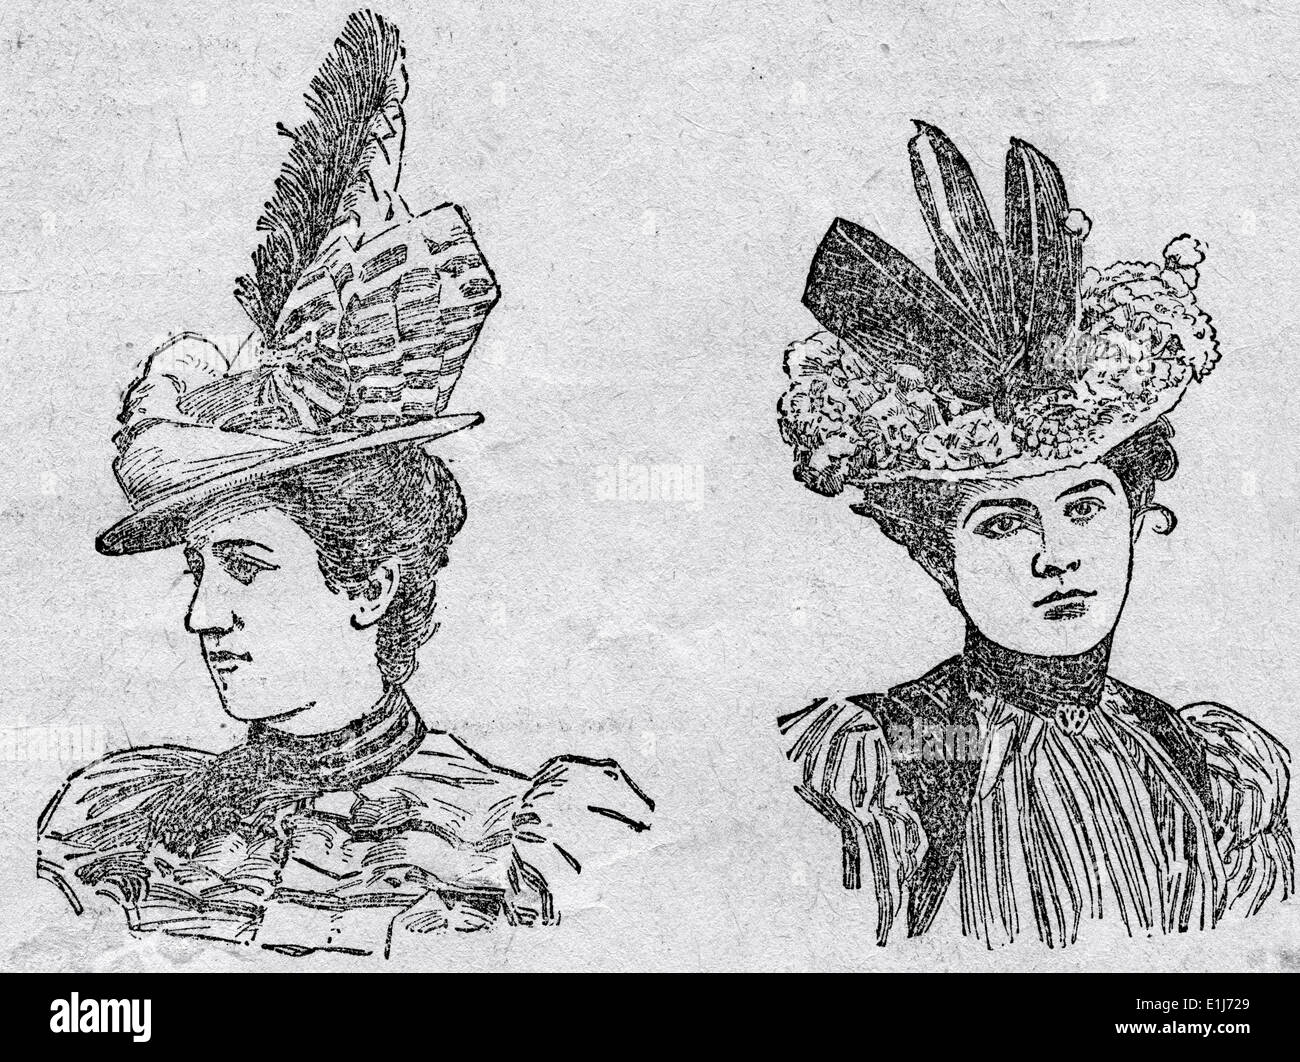 17 MAY 1898 -The Evening Gazette '300 new trimmed hats are ready for your inspection' in the Millinery Department.' - Stock Image